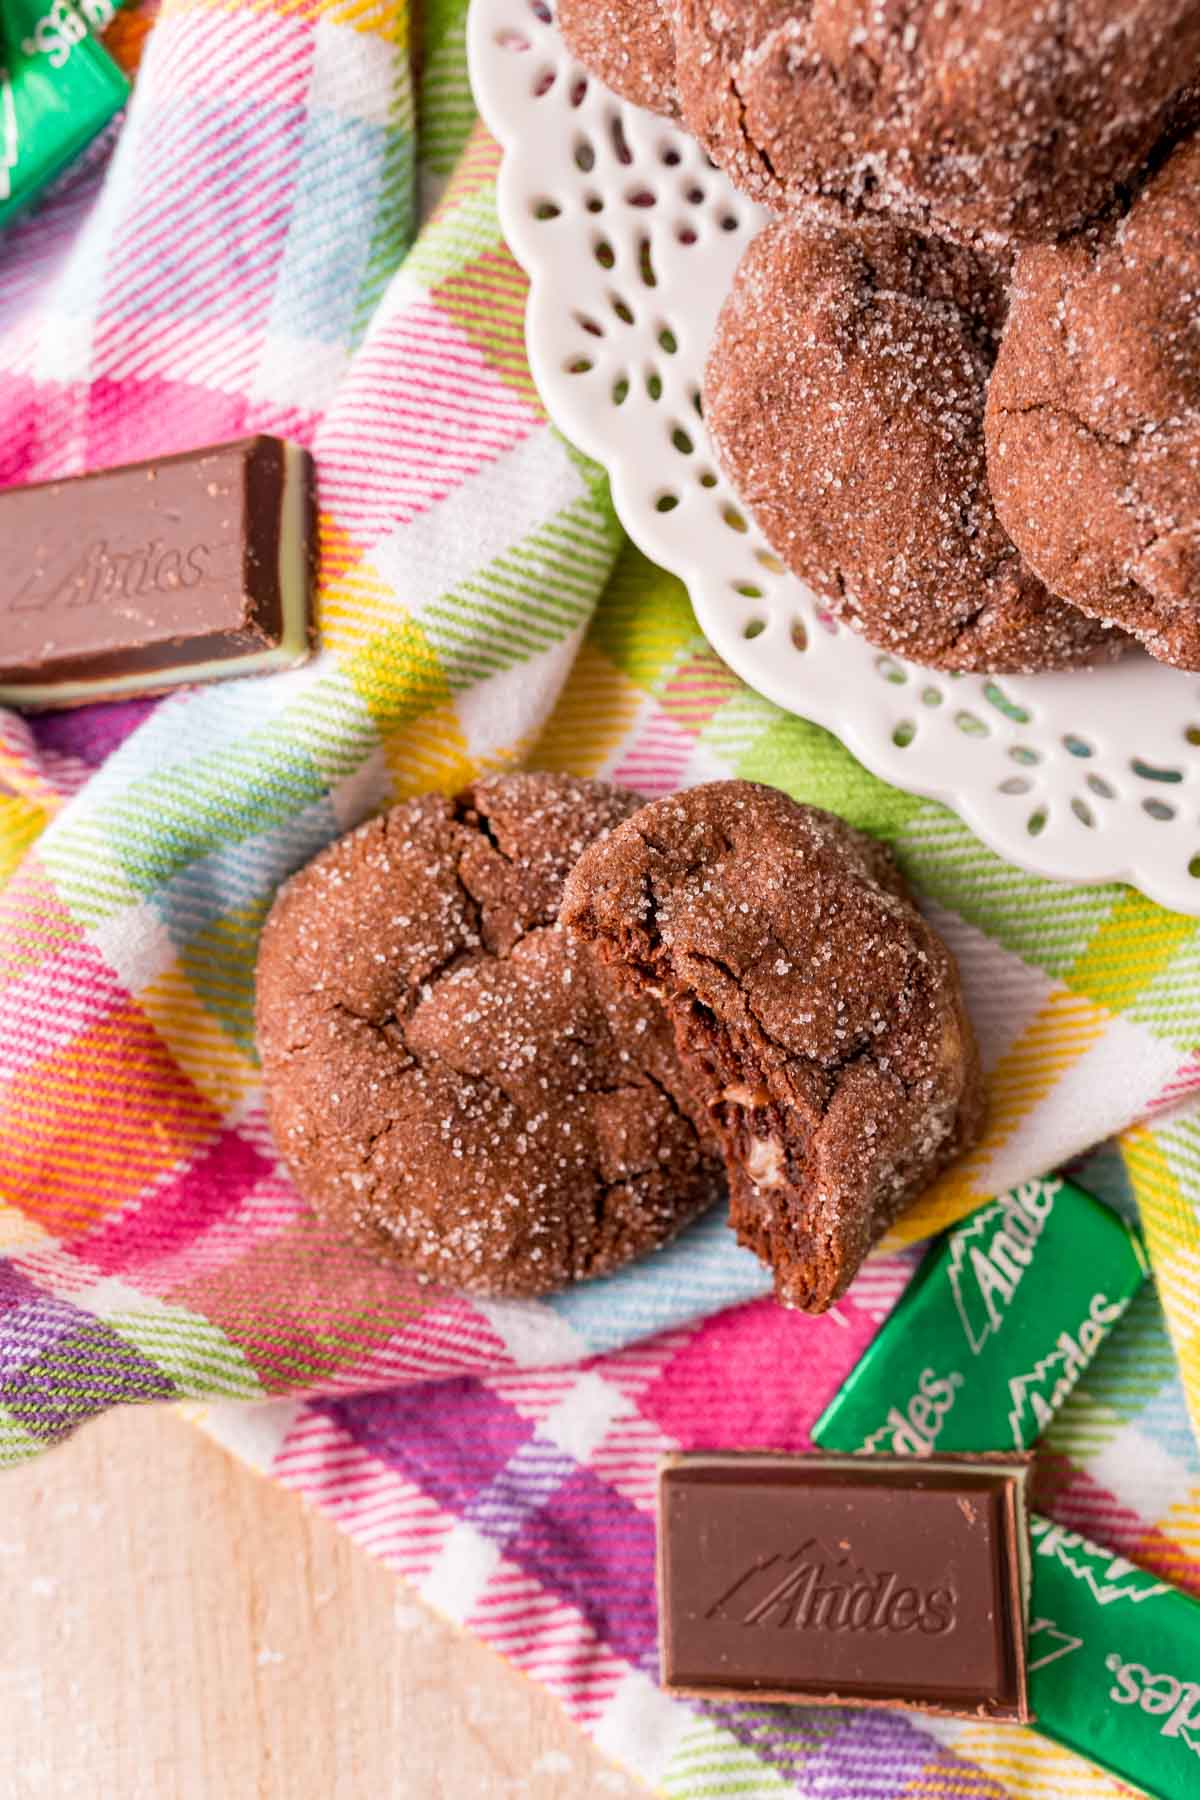 Small plate of Andes Mint cookies with a colorful napkin